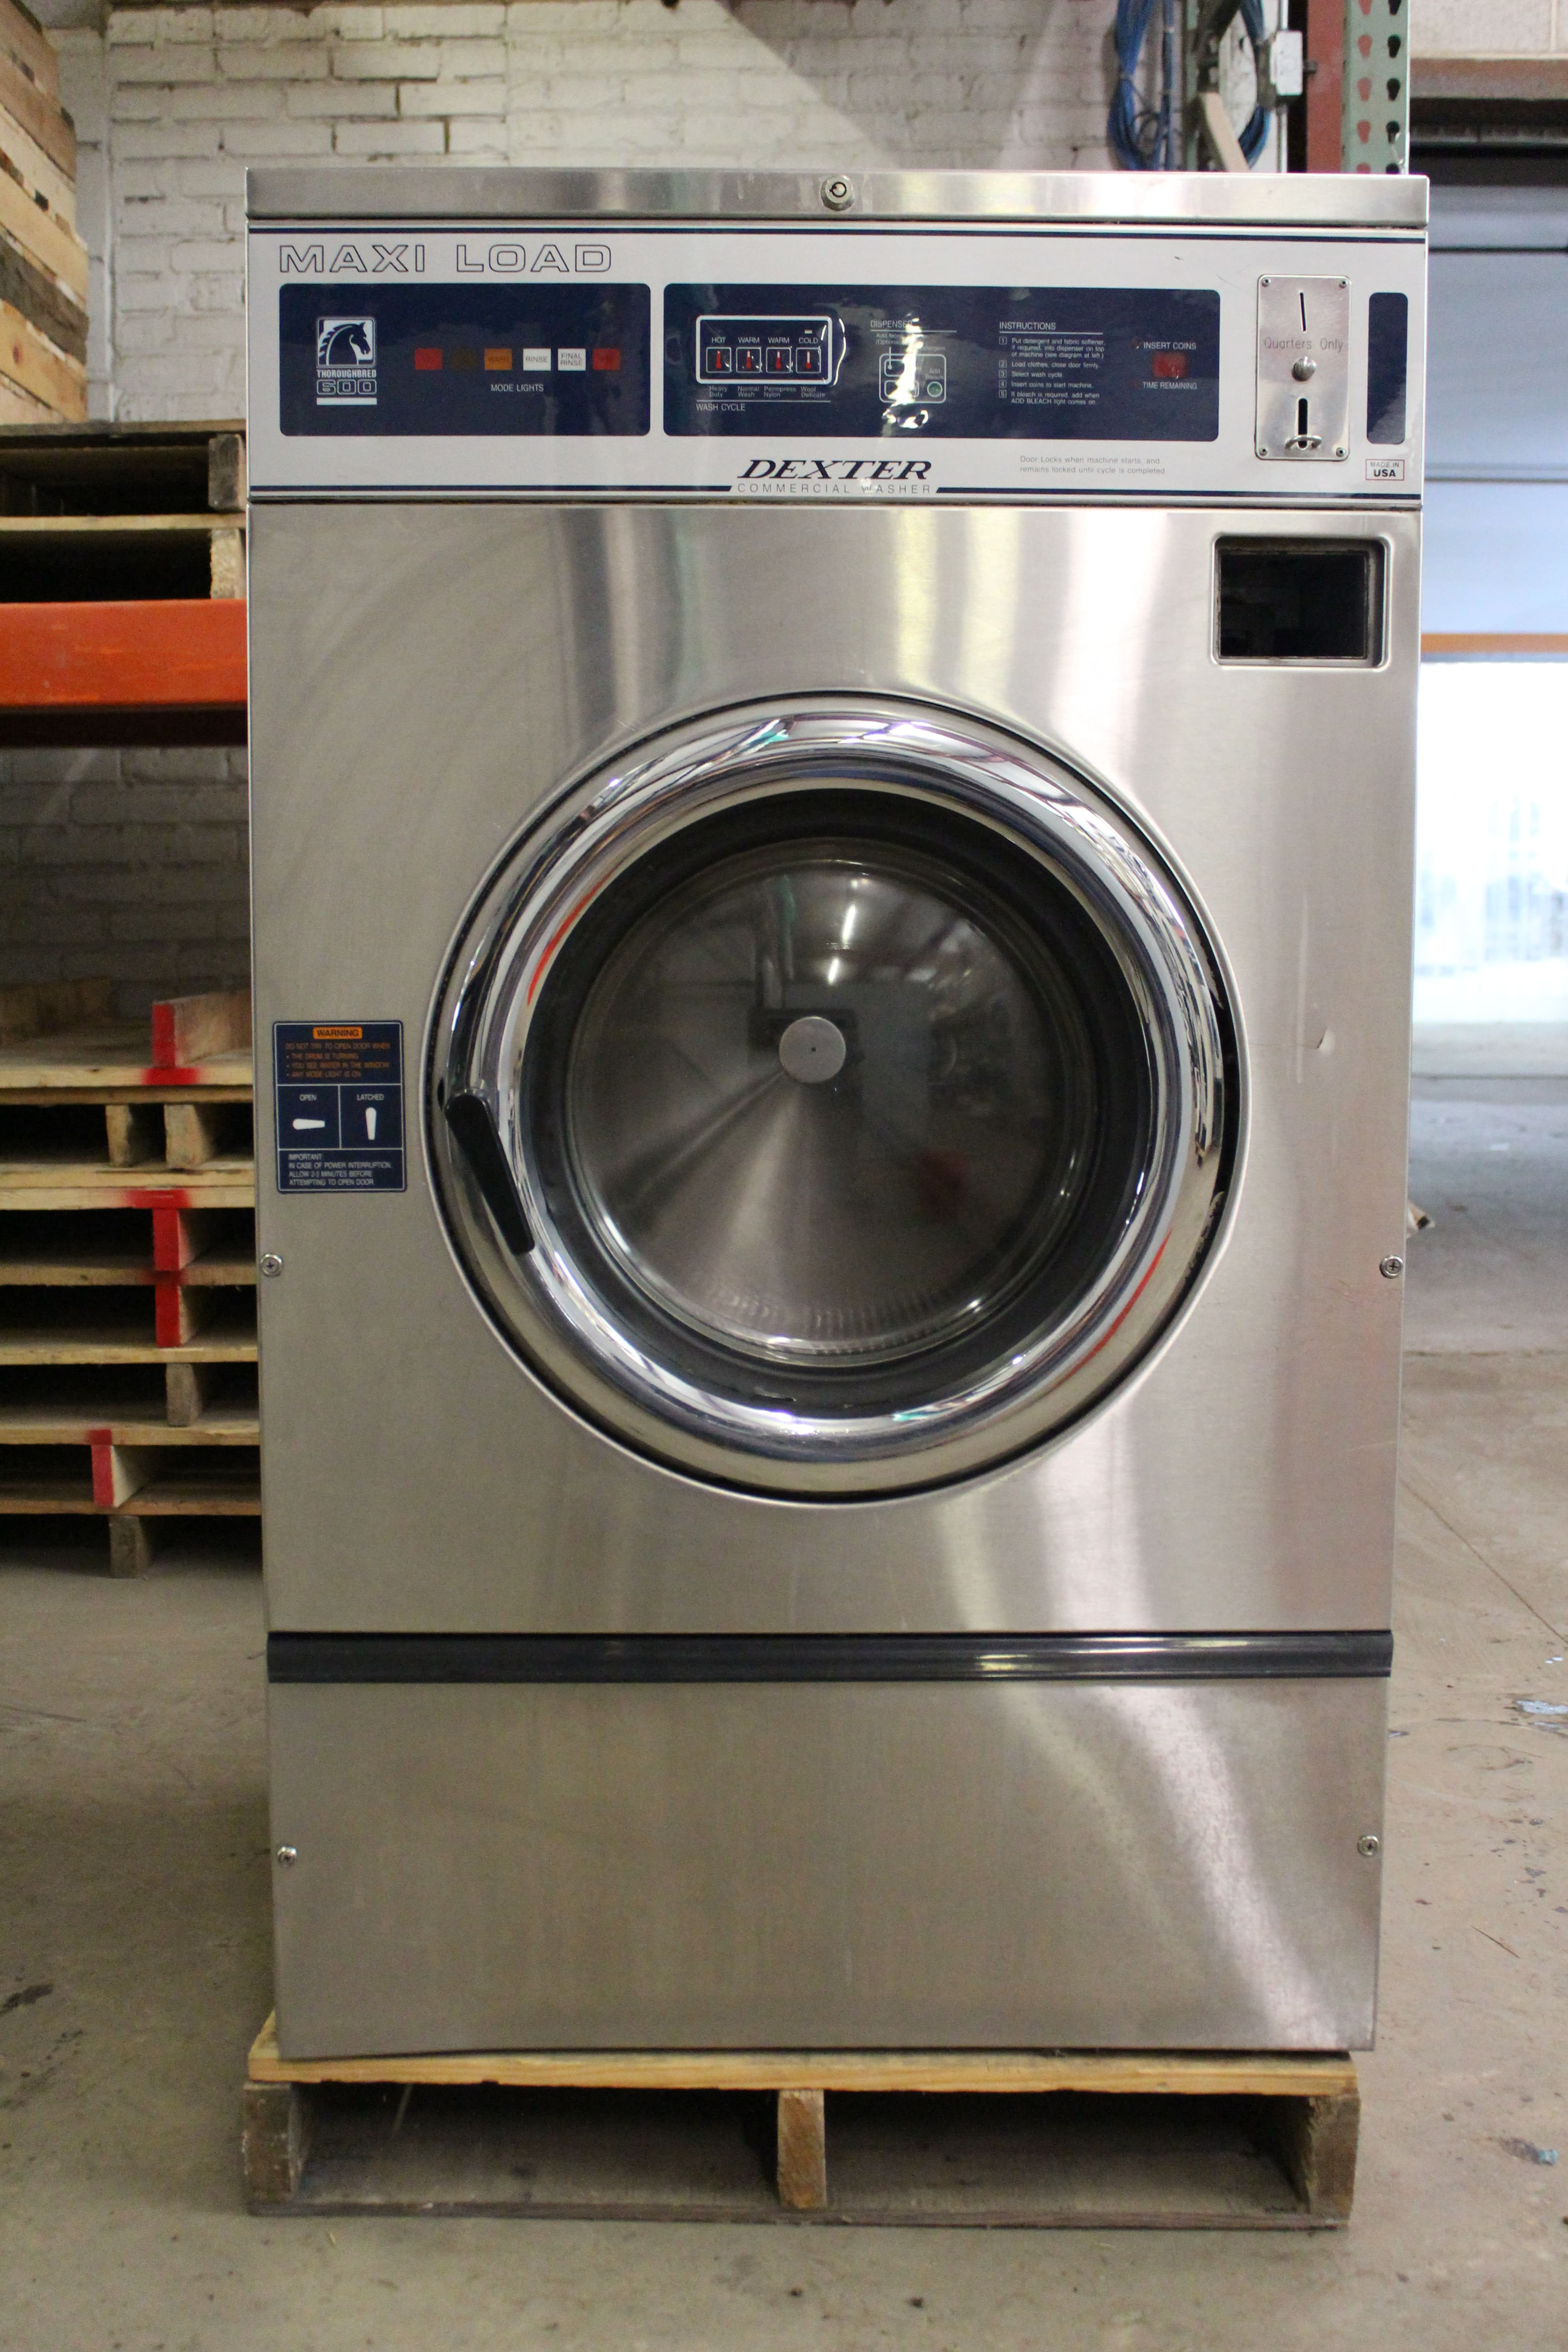 2001 dexter wcn40abss t 600, 40lb Dexter T300 Washer Wiring Diagram troubleshooting support dexter laundry